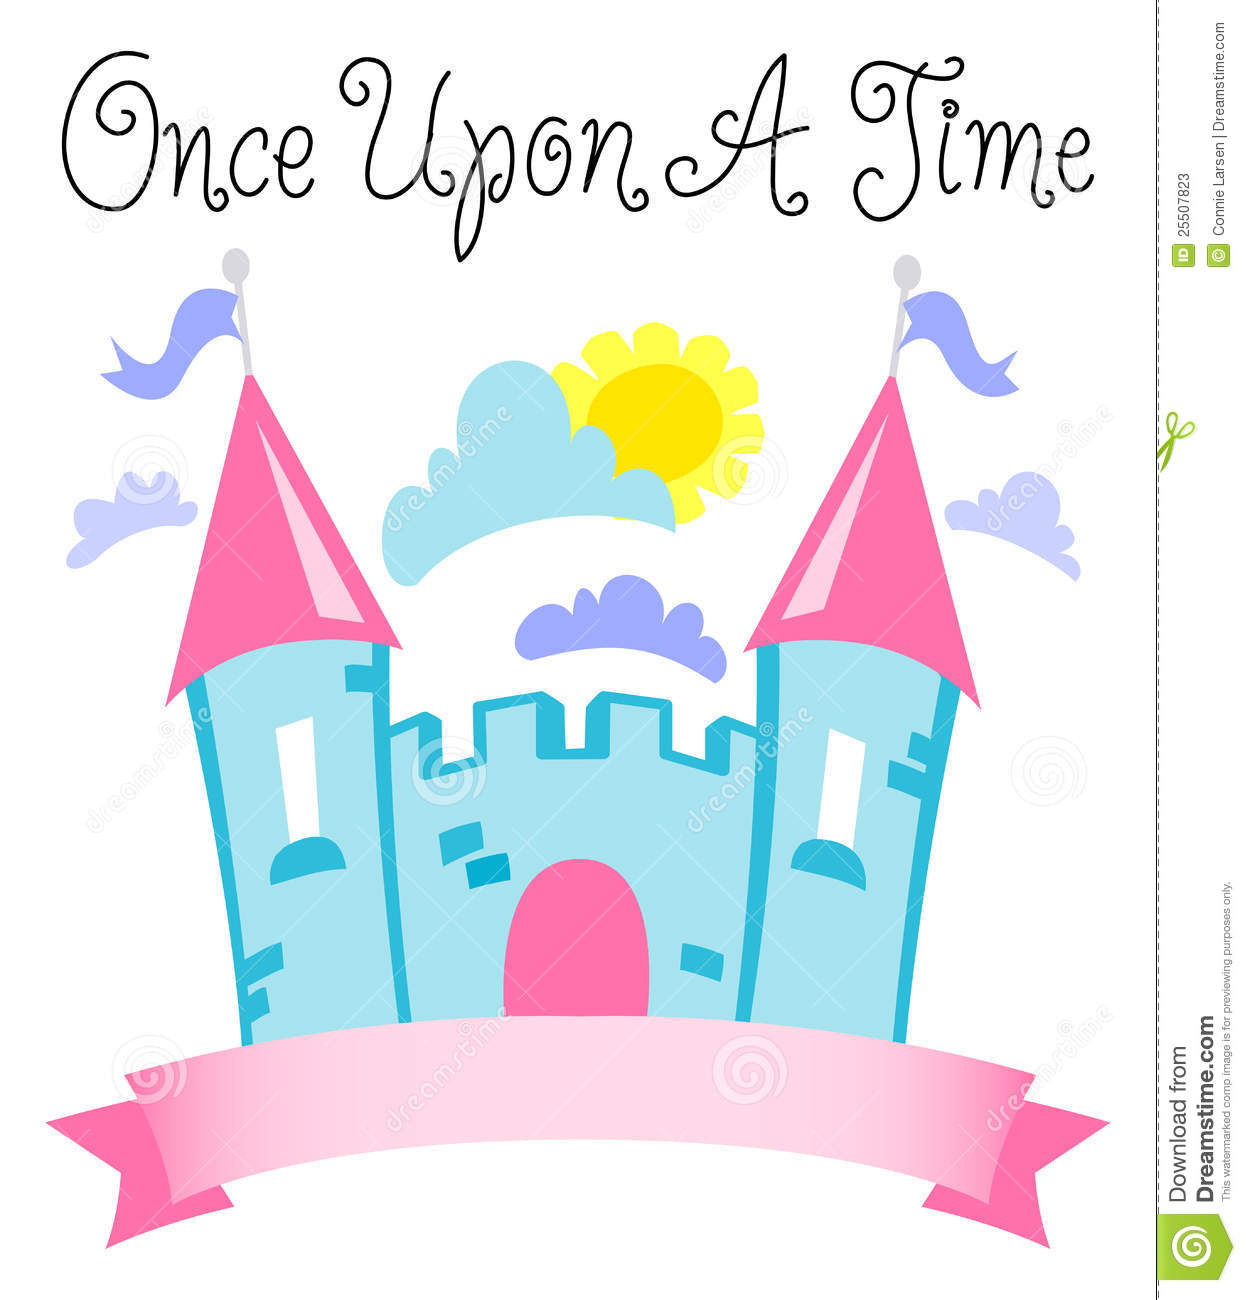 Fairy Tale clipart #8, Download drawings